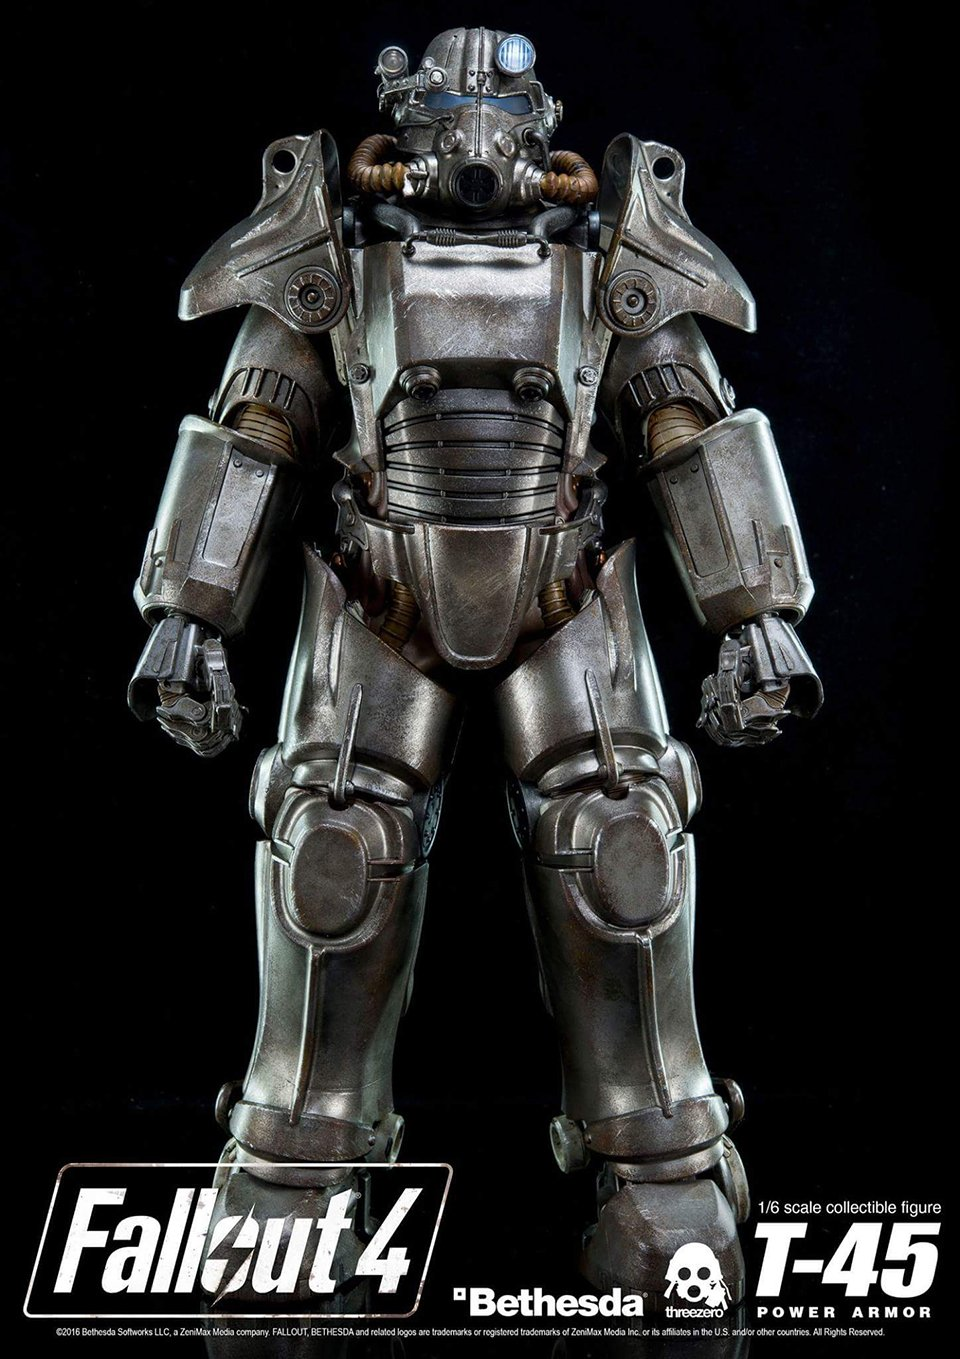 Fallout 4 T-45 Action Figure